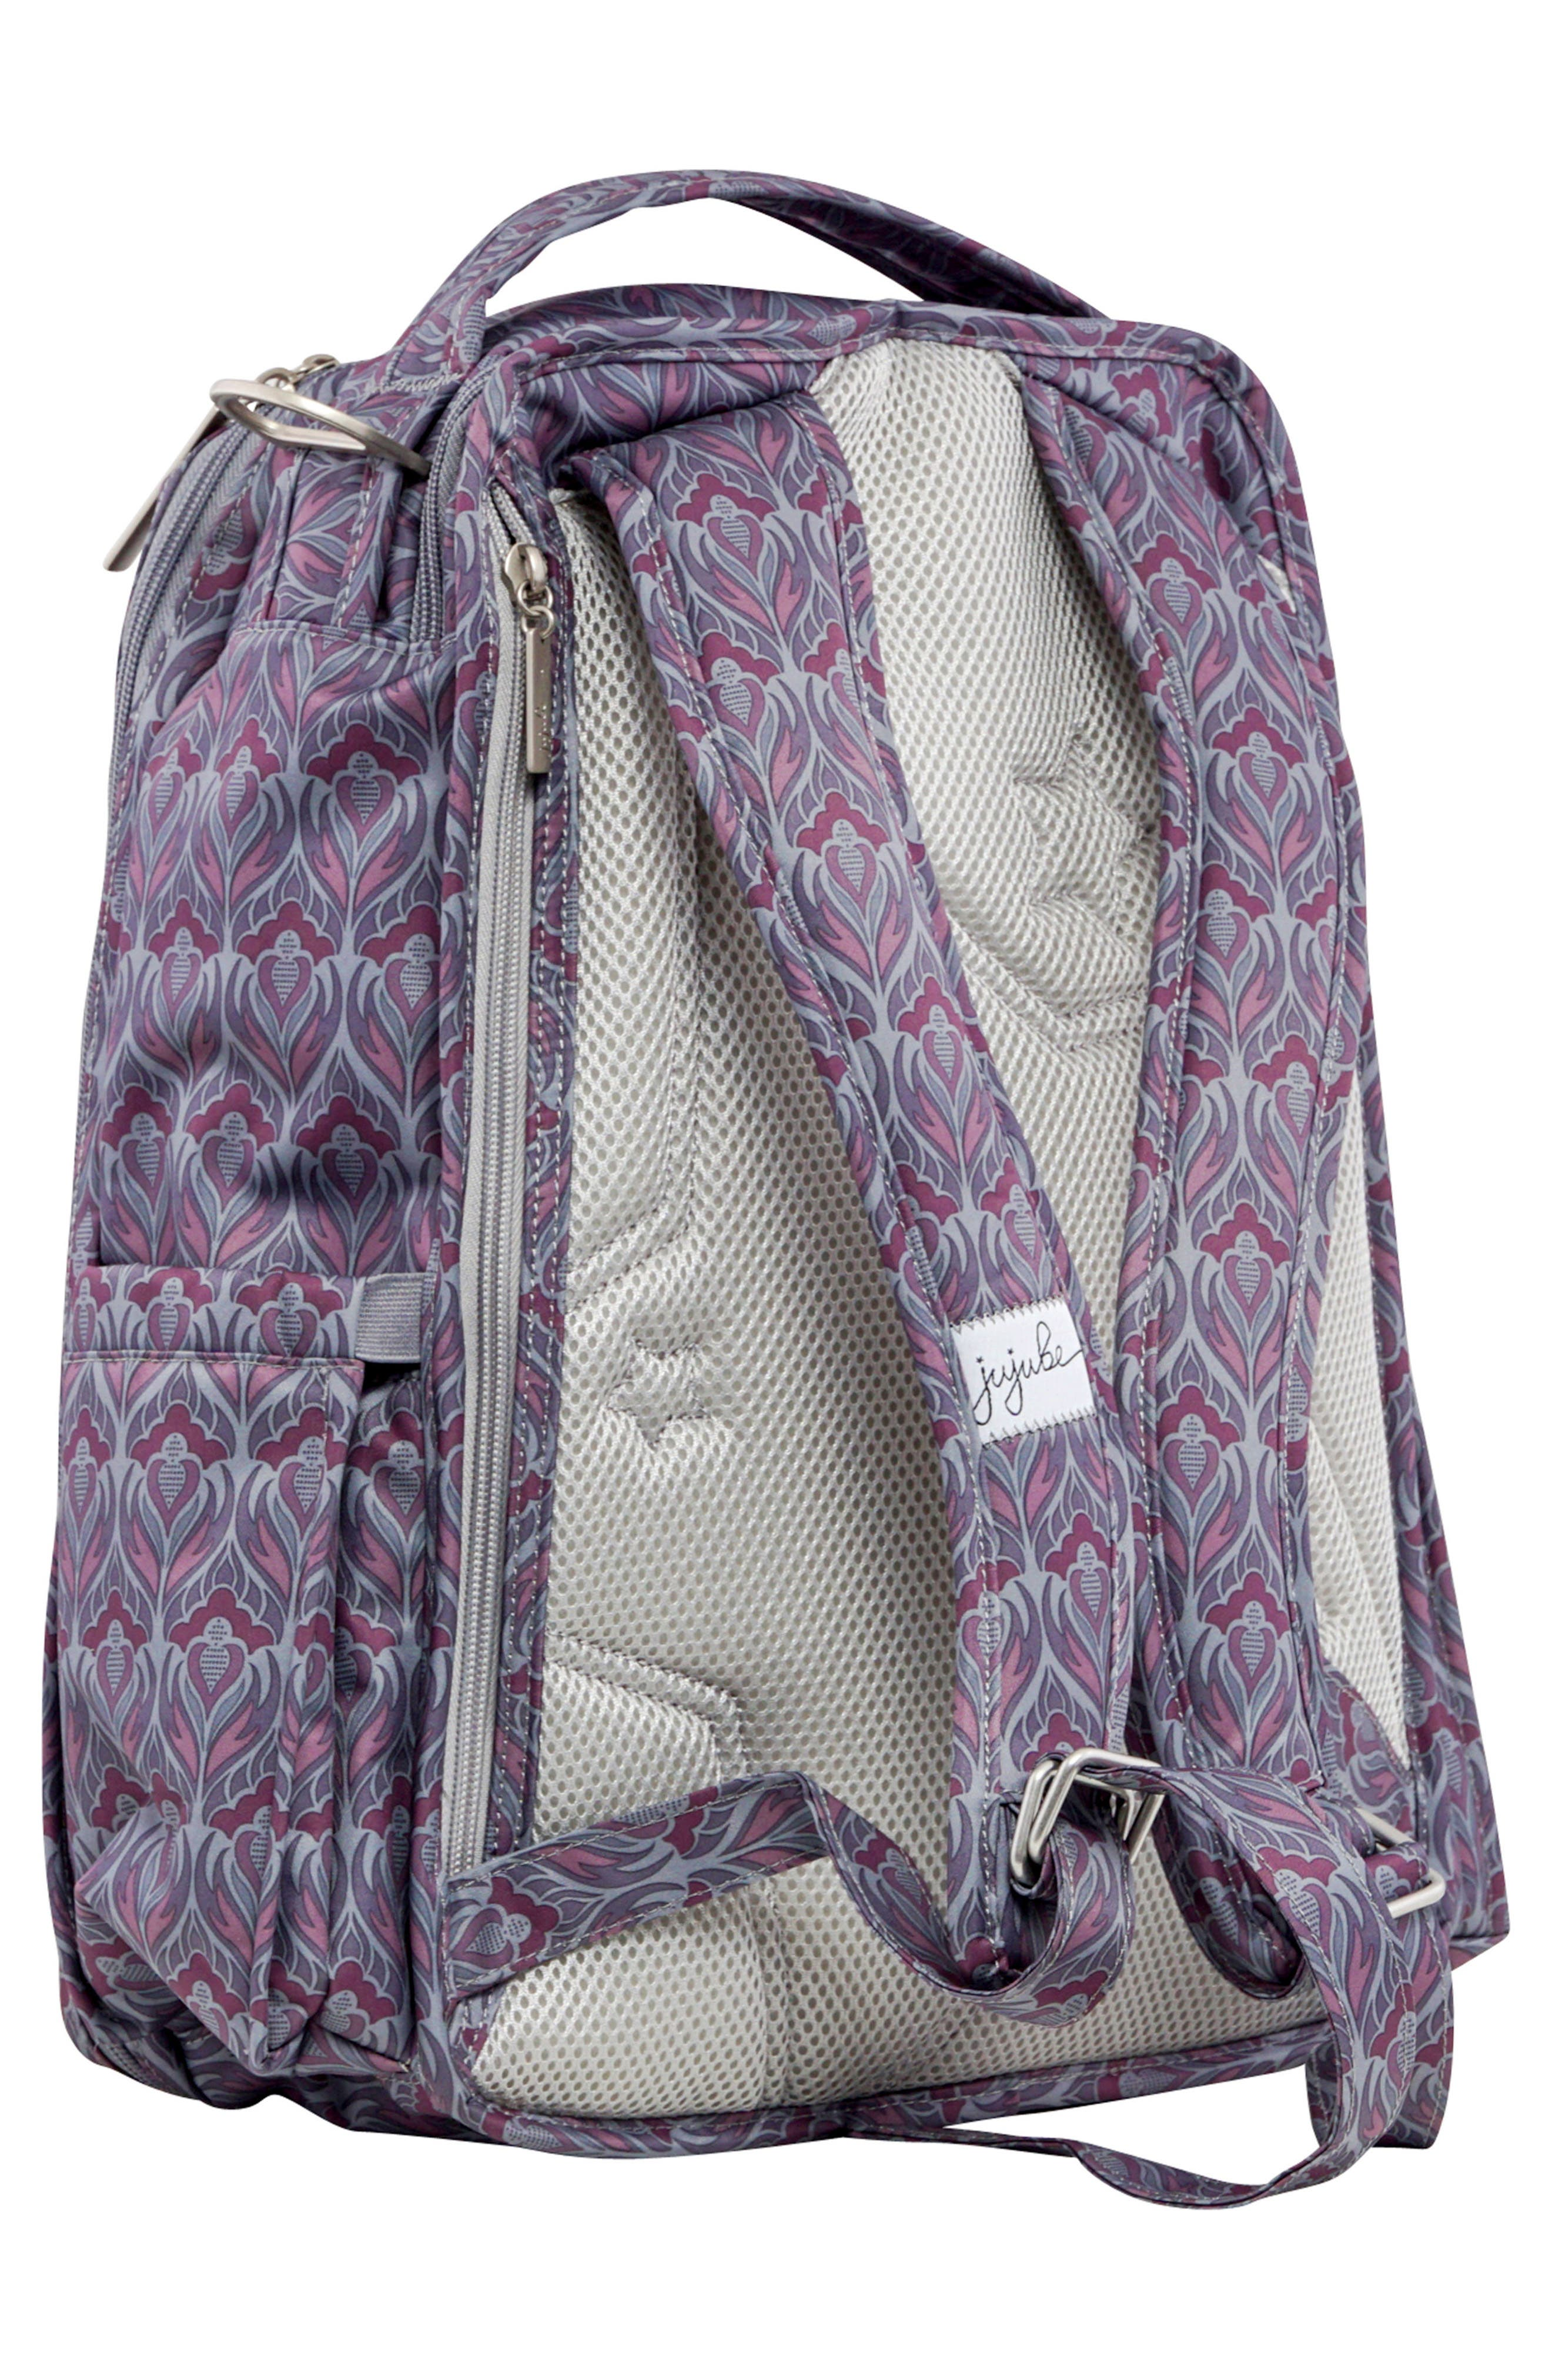 'Be Right Back' Diaper Backpack,                             Alternate thumbnail 89, color,